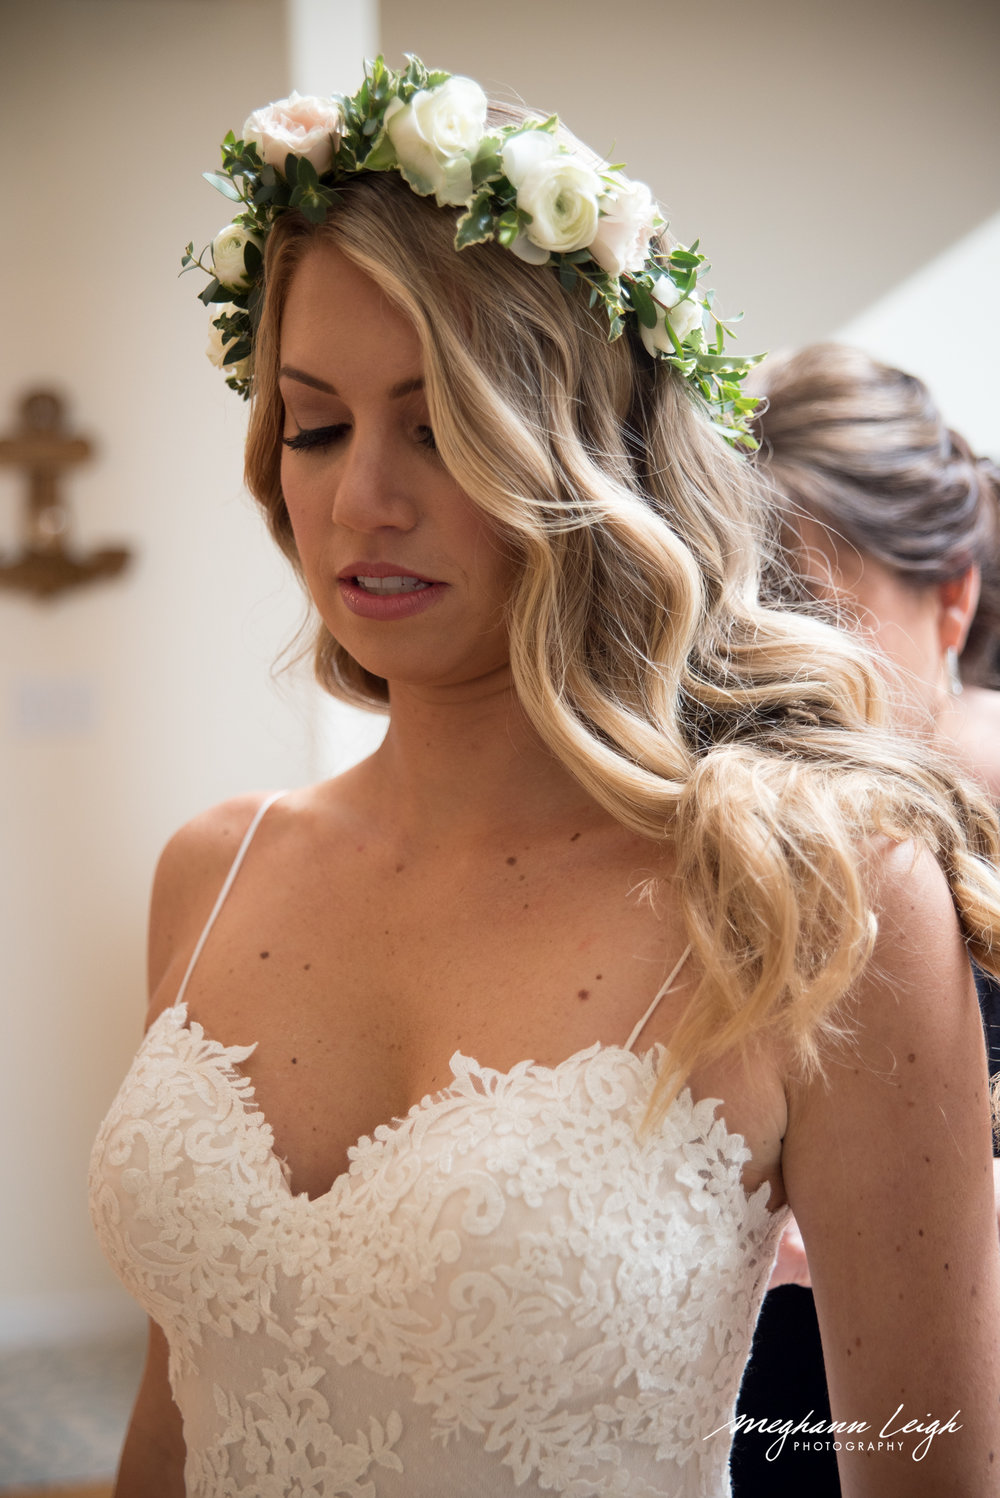 BEAUTIGLOW BRIDE - Email us to book Beautiglow for your wedding!